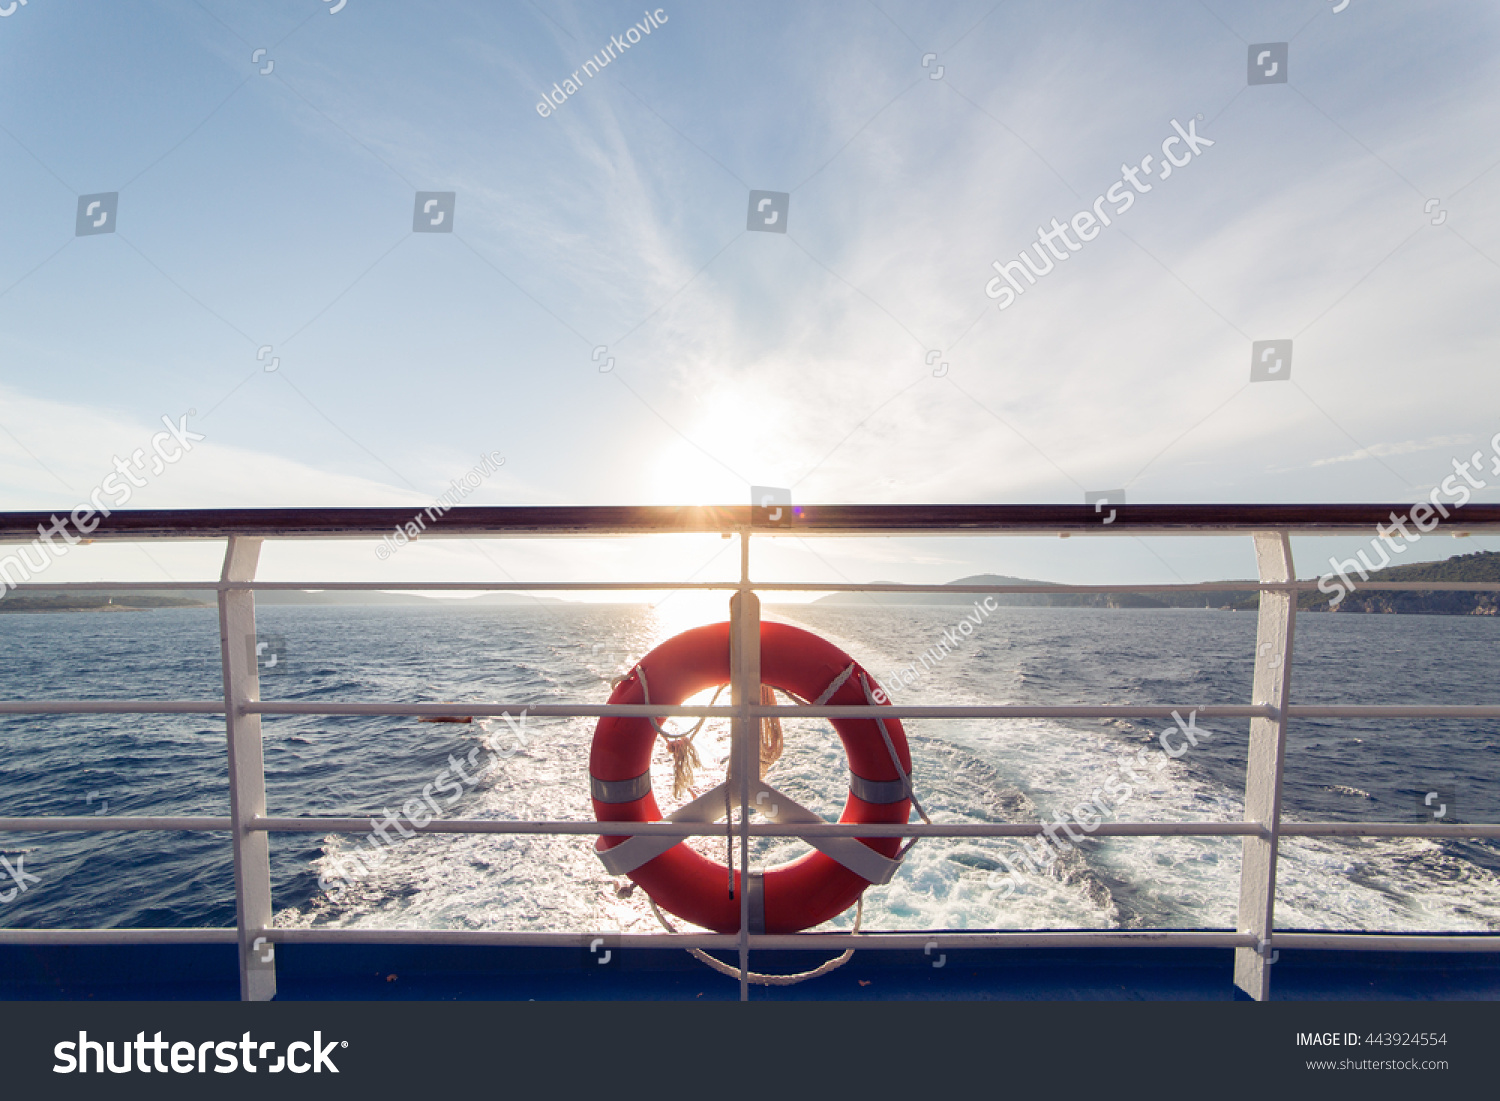 Ring life boy on big boat.Obligatory ship equipment.Personal flotation device.Prevent drowning.Orange lifesaver on the deck of a cruise ship.Traveling to an island #443924554